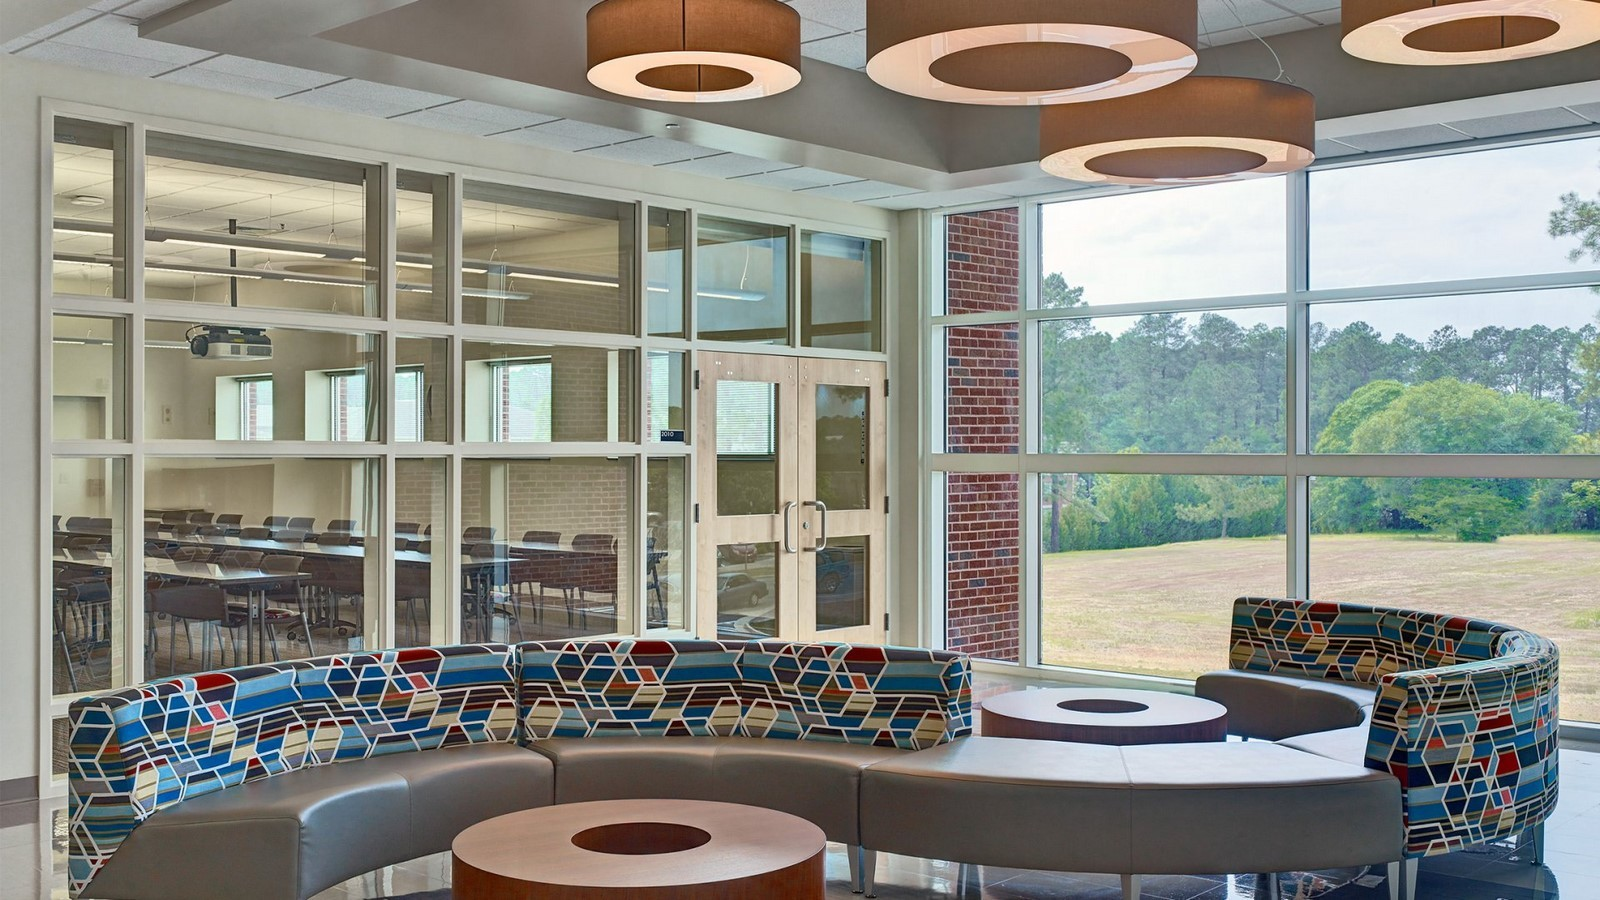 Georgia Southern University Health Services Building - Sheet1